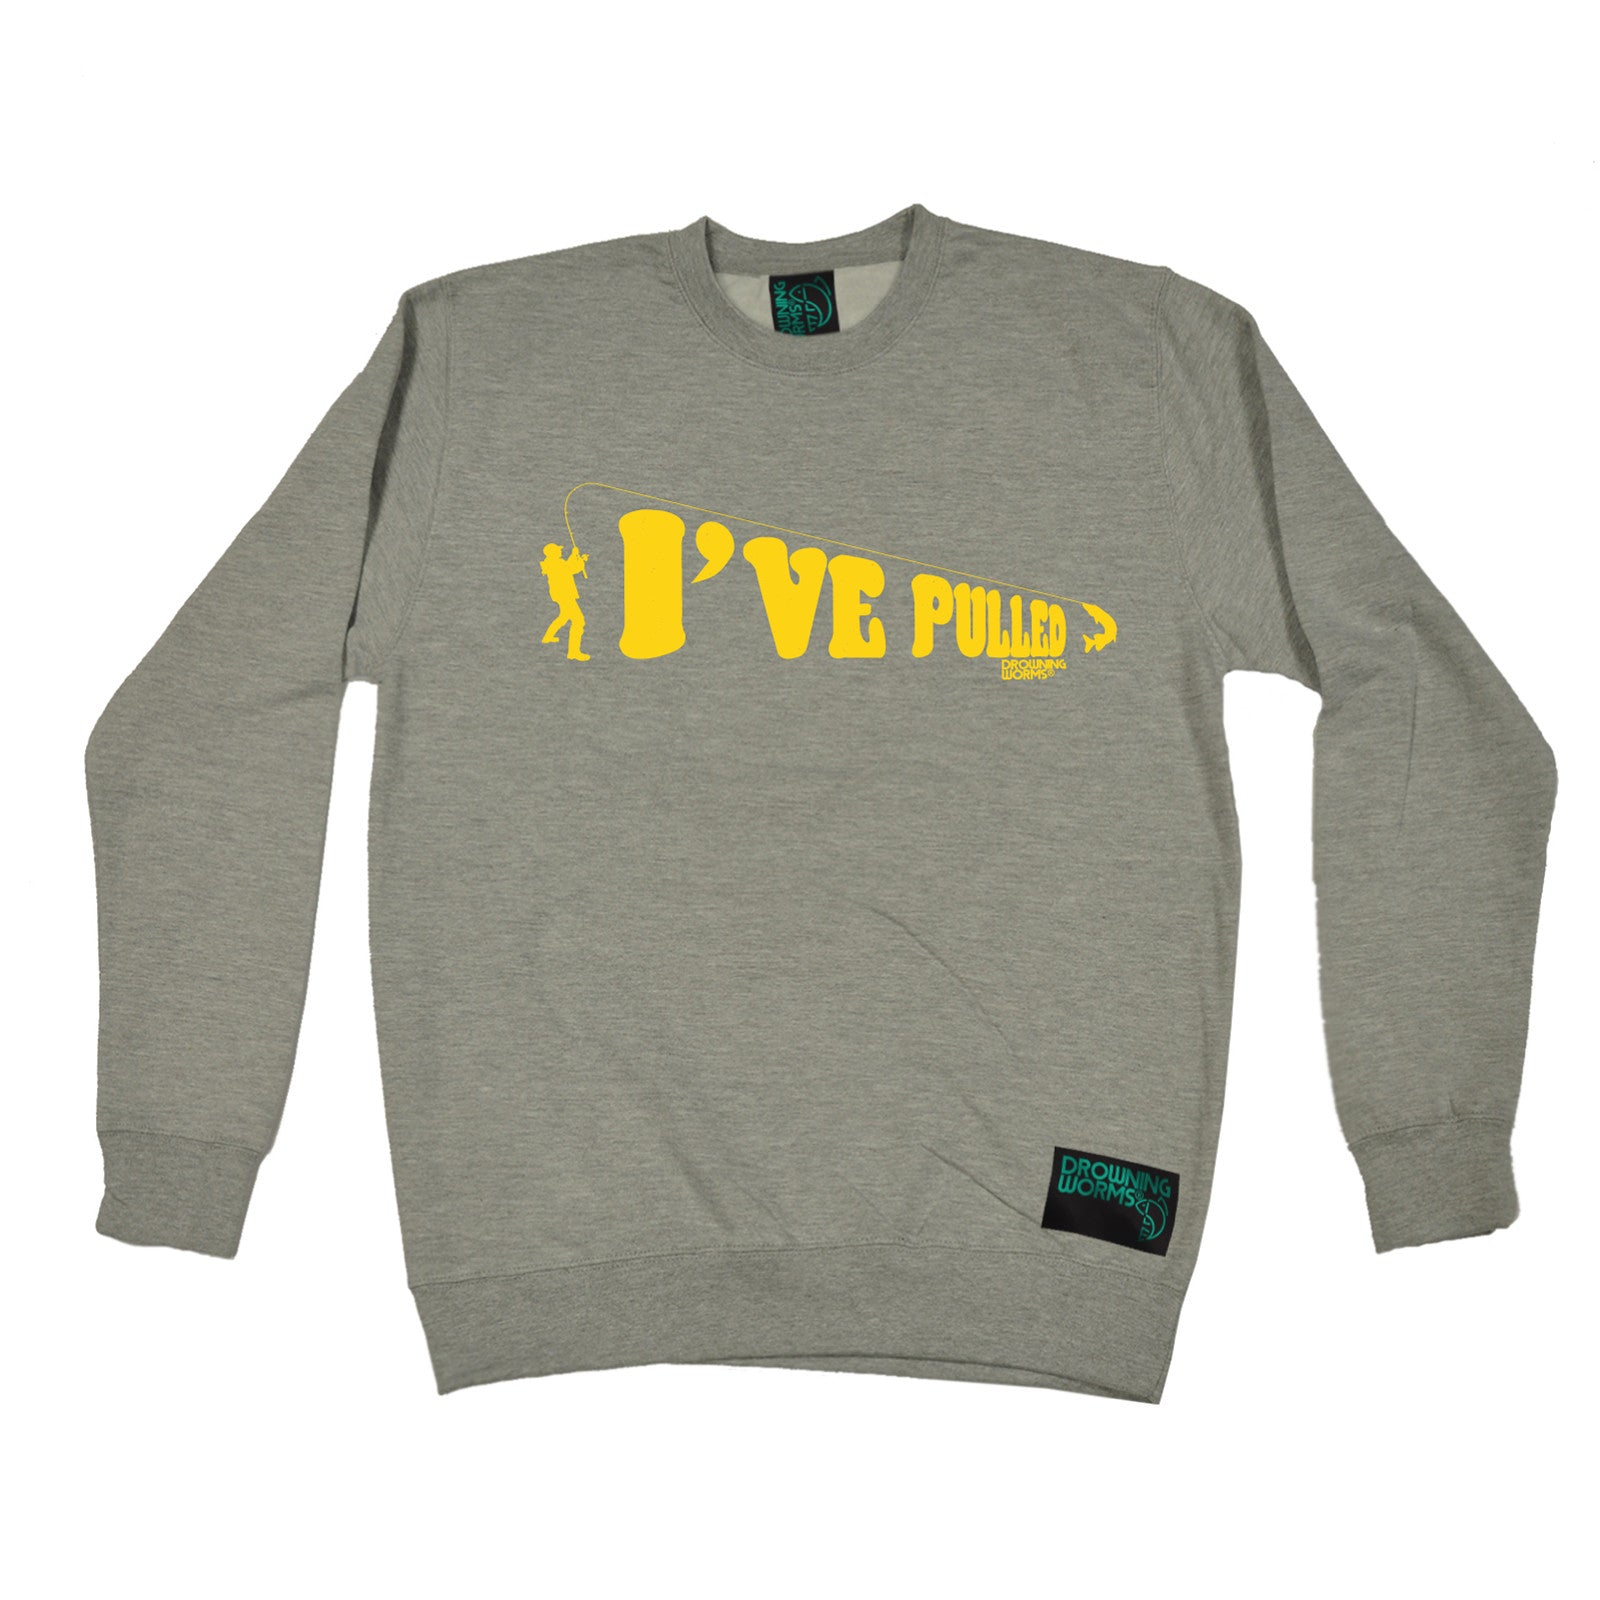 I-039-ve-Pulled-Drowning-Worms-SWEATSHIRT-jumper-Christmas-gift-gear-funny-fish